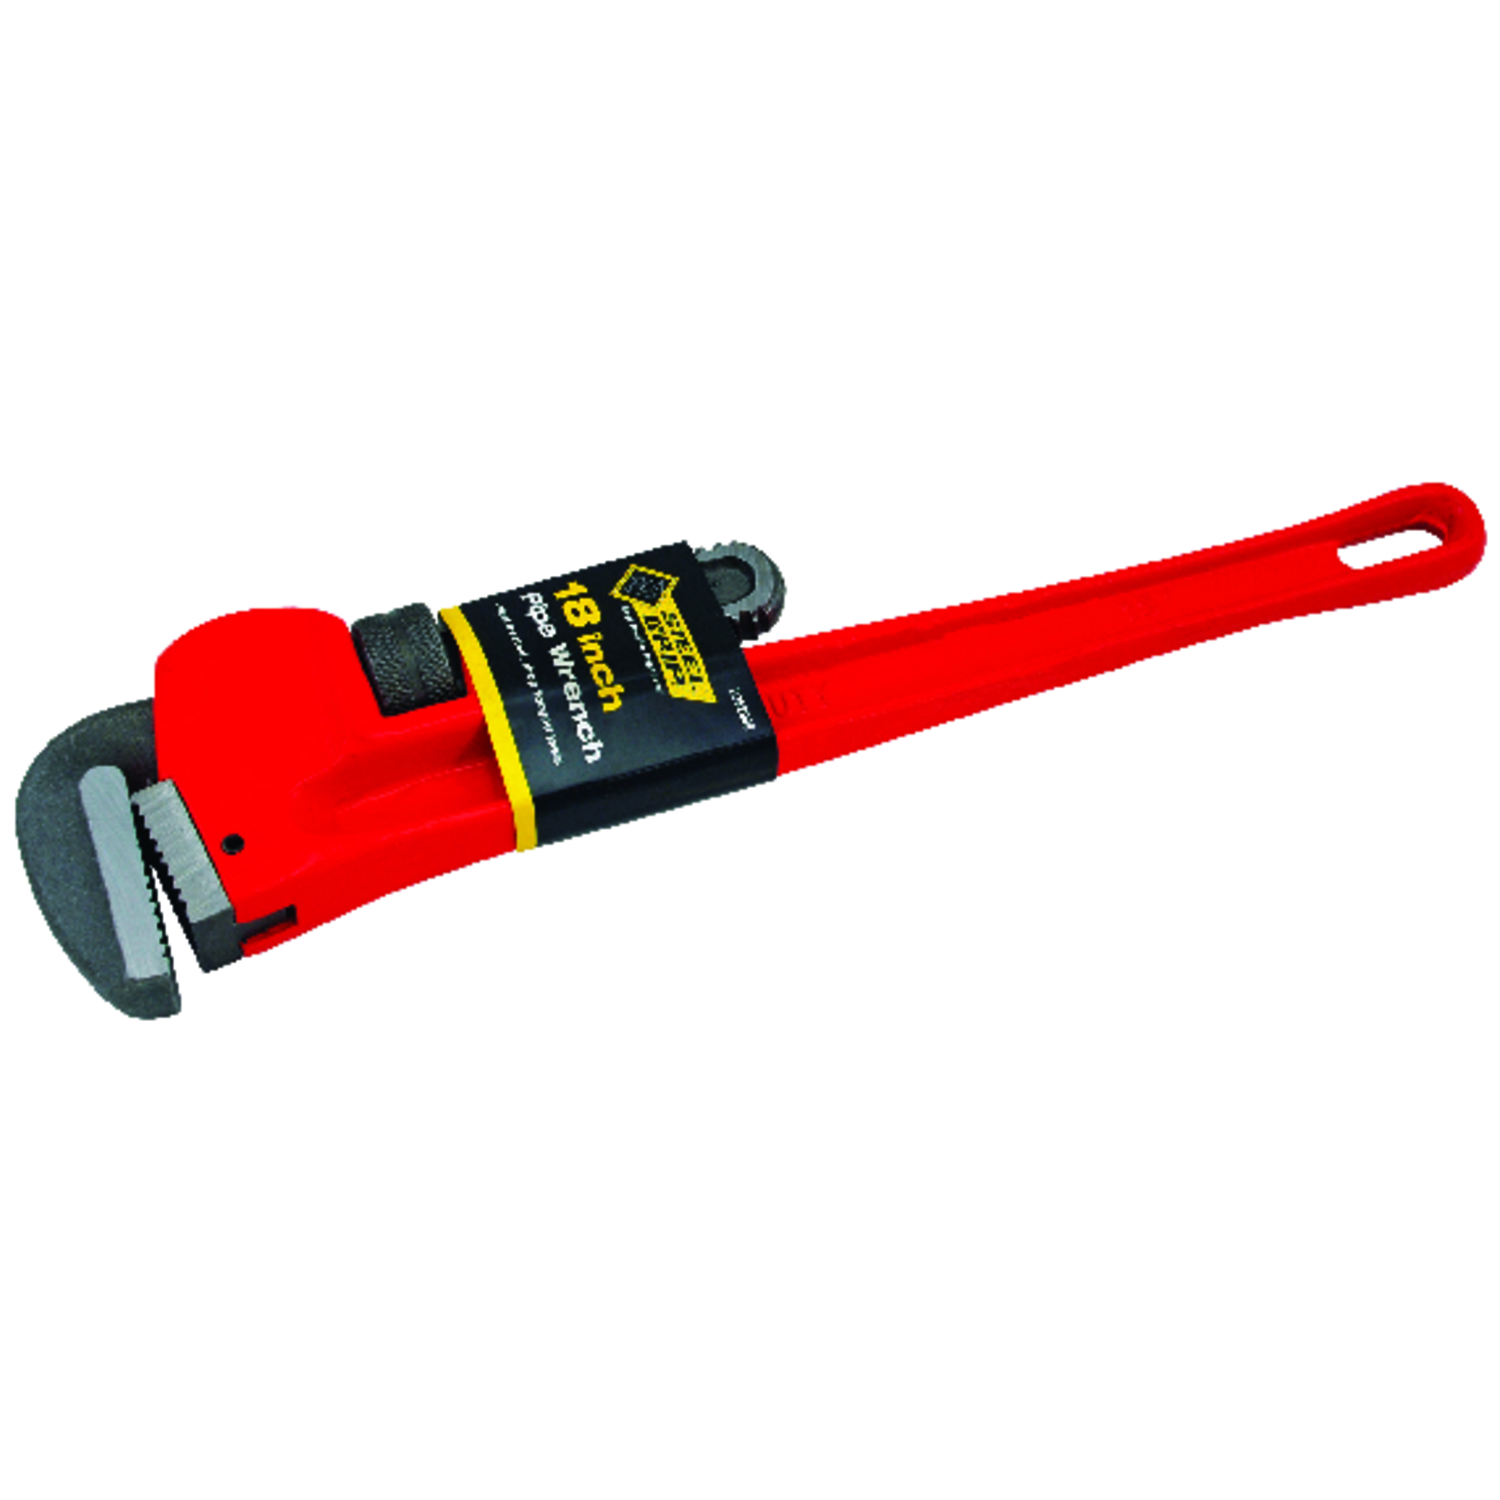 Steel Grip  Pipe Wrench  18 in. Cast Iron  1 pc.